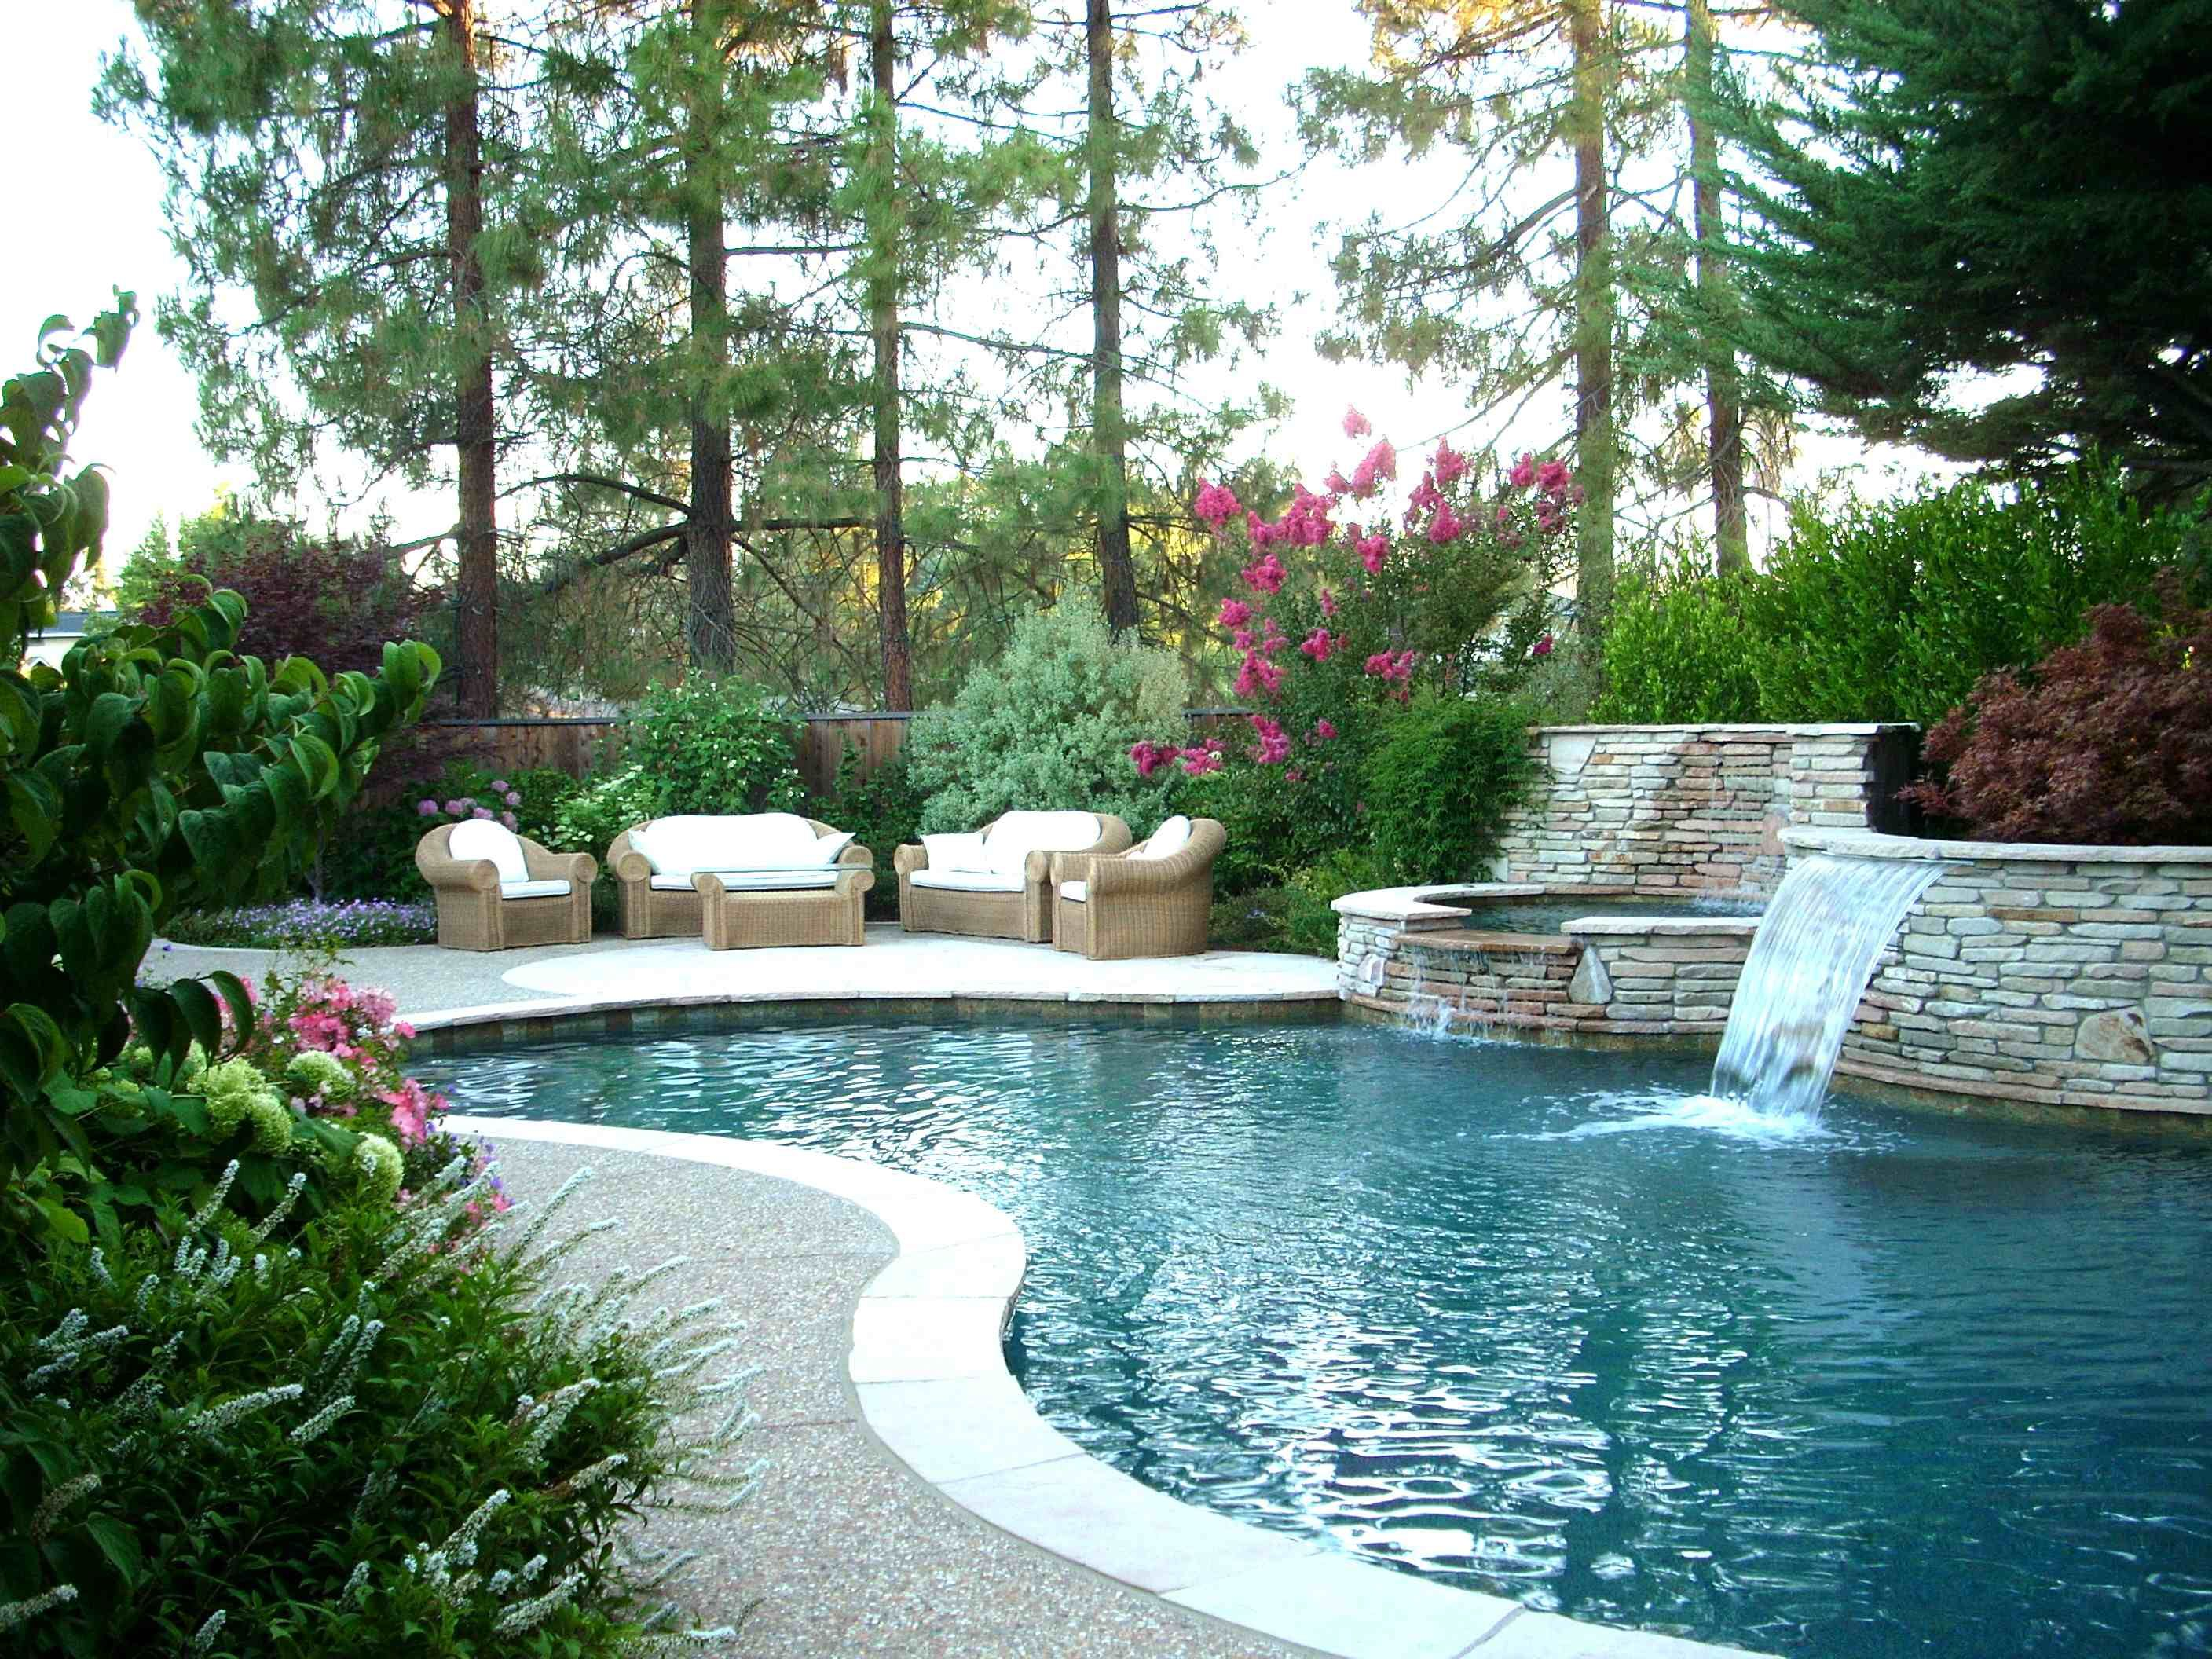 Landscaped pool pictures landscape design ideas for for Beautiful garden ideas pictures